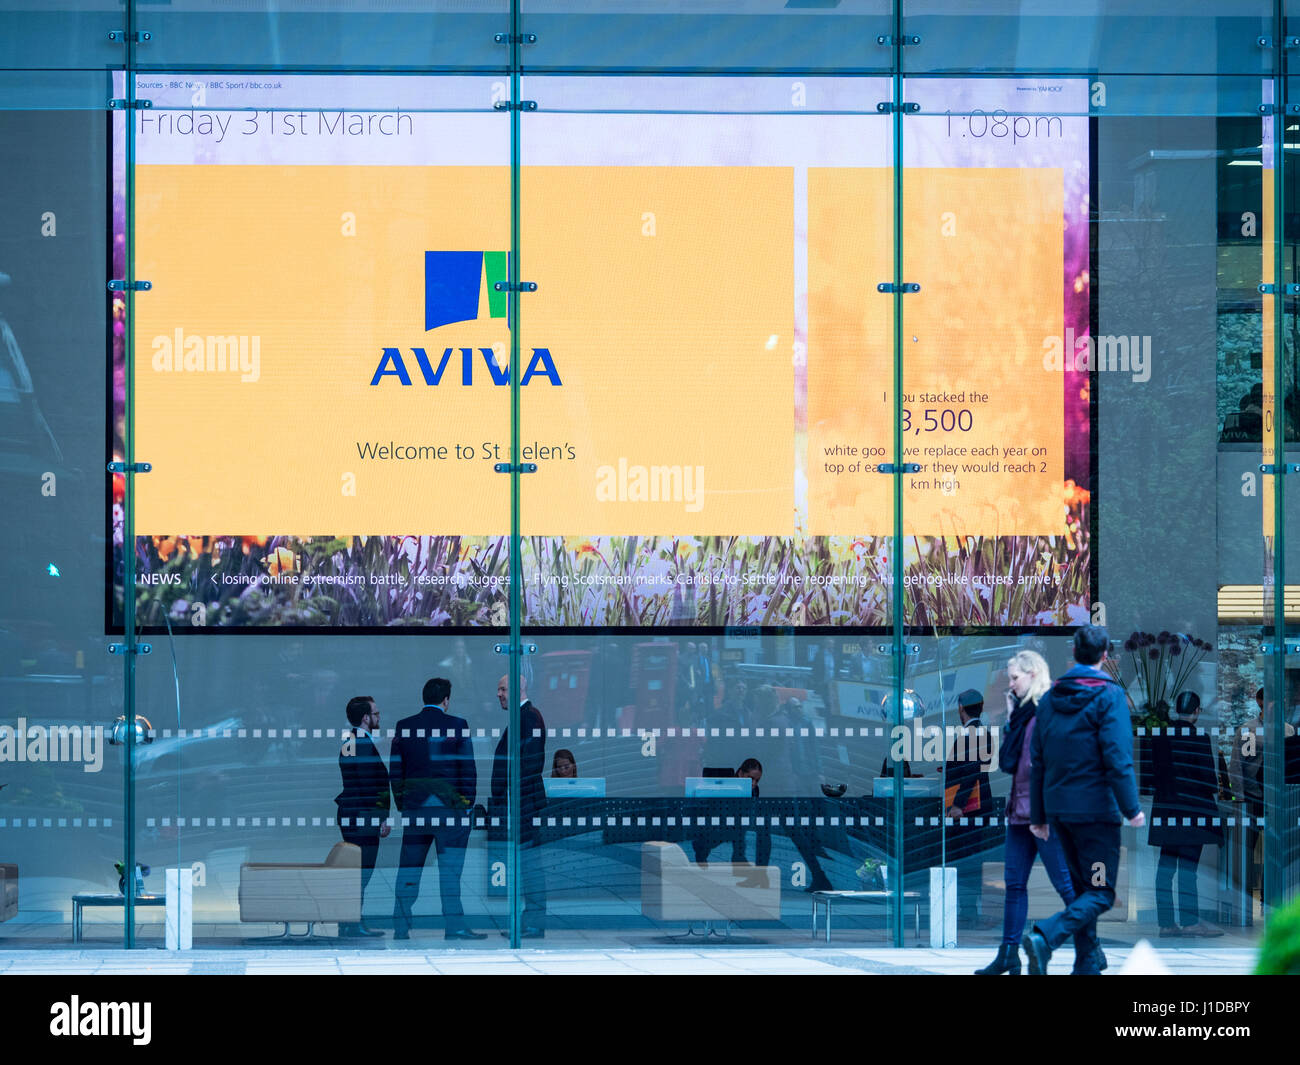 Aviva display in the foyer of the St Helen's building, formerly the Aviva Tower, in St Mary Axe in the City - Stock Image